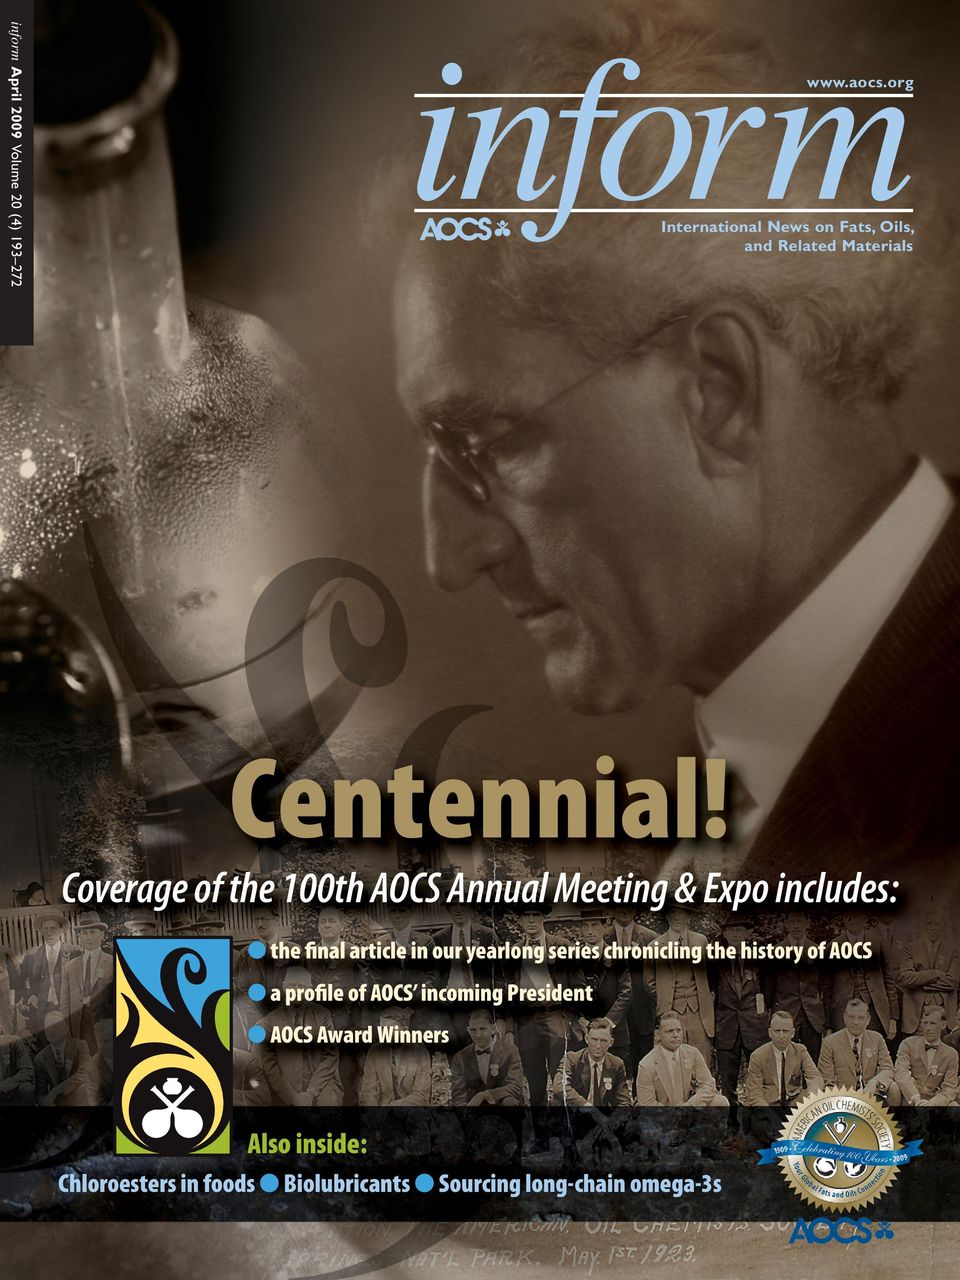 Coverage of the 100th AOCS Annual Meeting & Expo includes: the final article in our yearlong